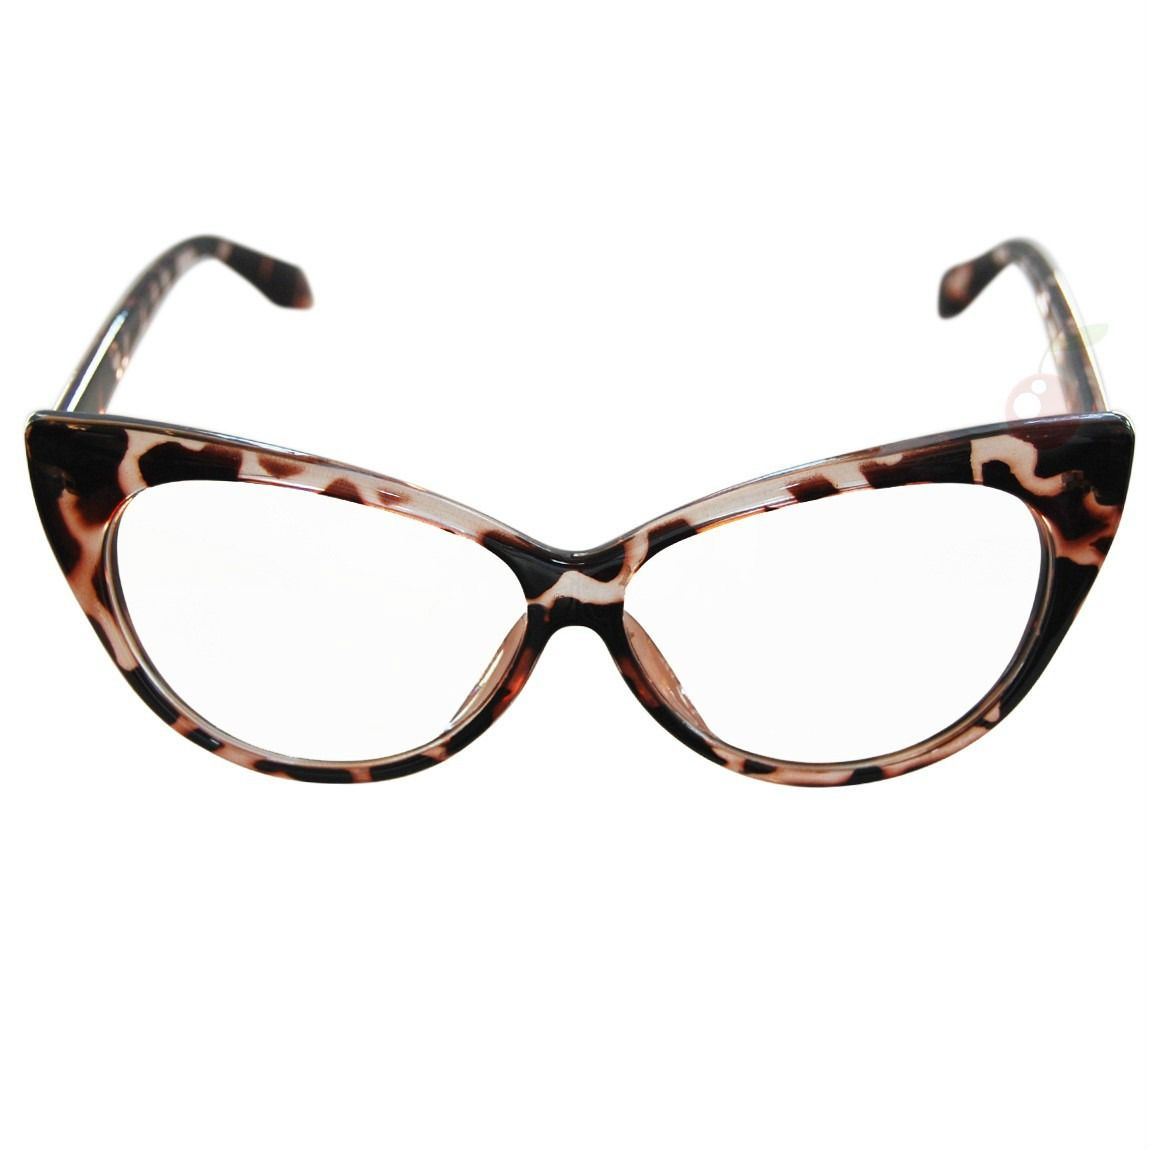 lentes-cat-eye-animal-print-leopardo-16174-MLC20115823010_062014-F ...